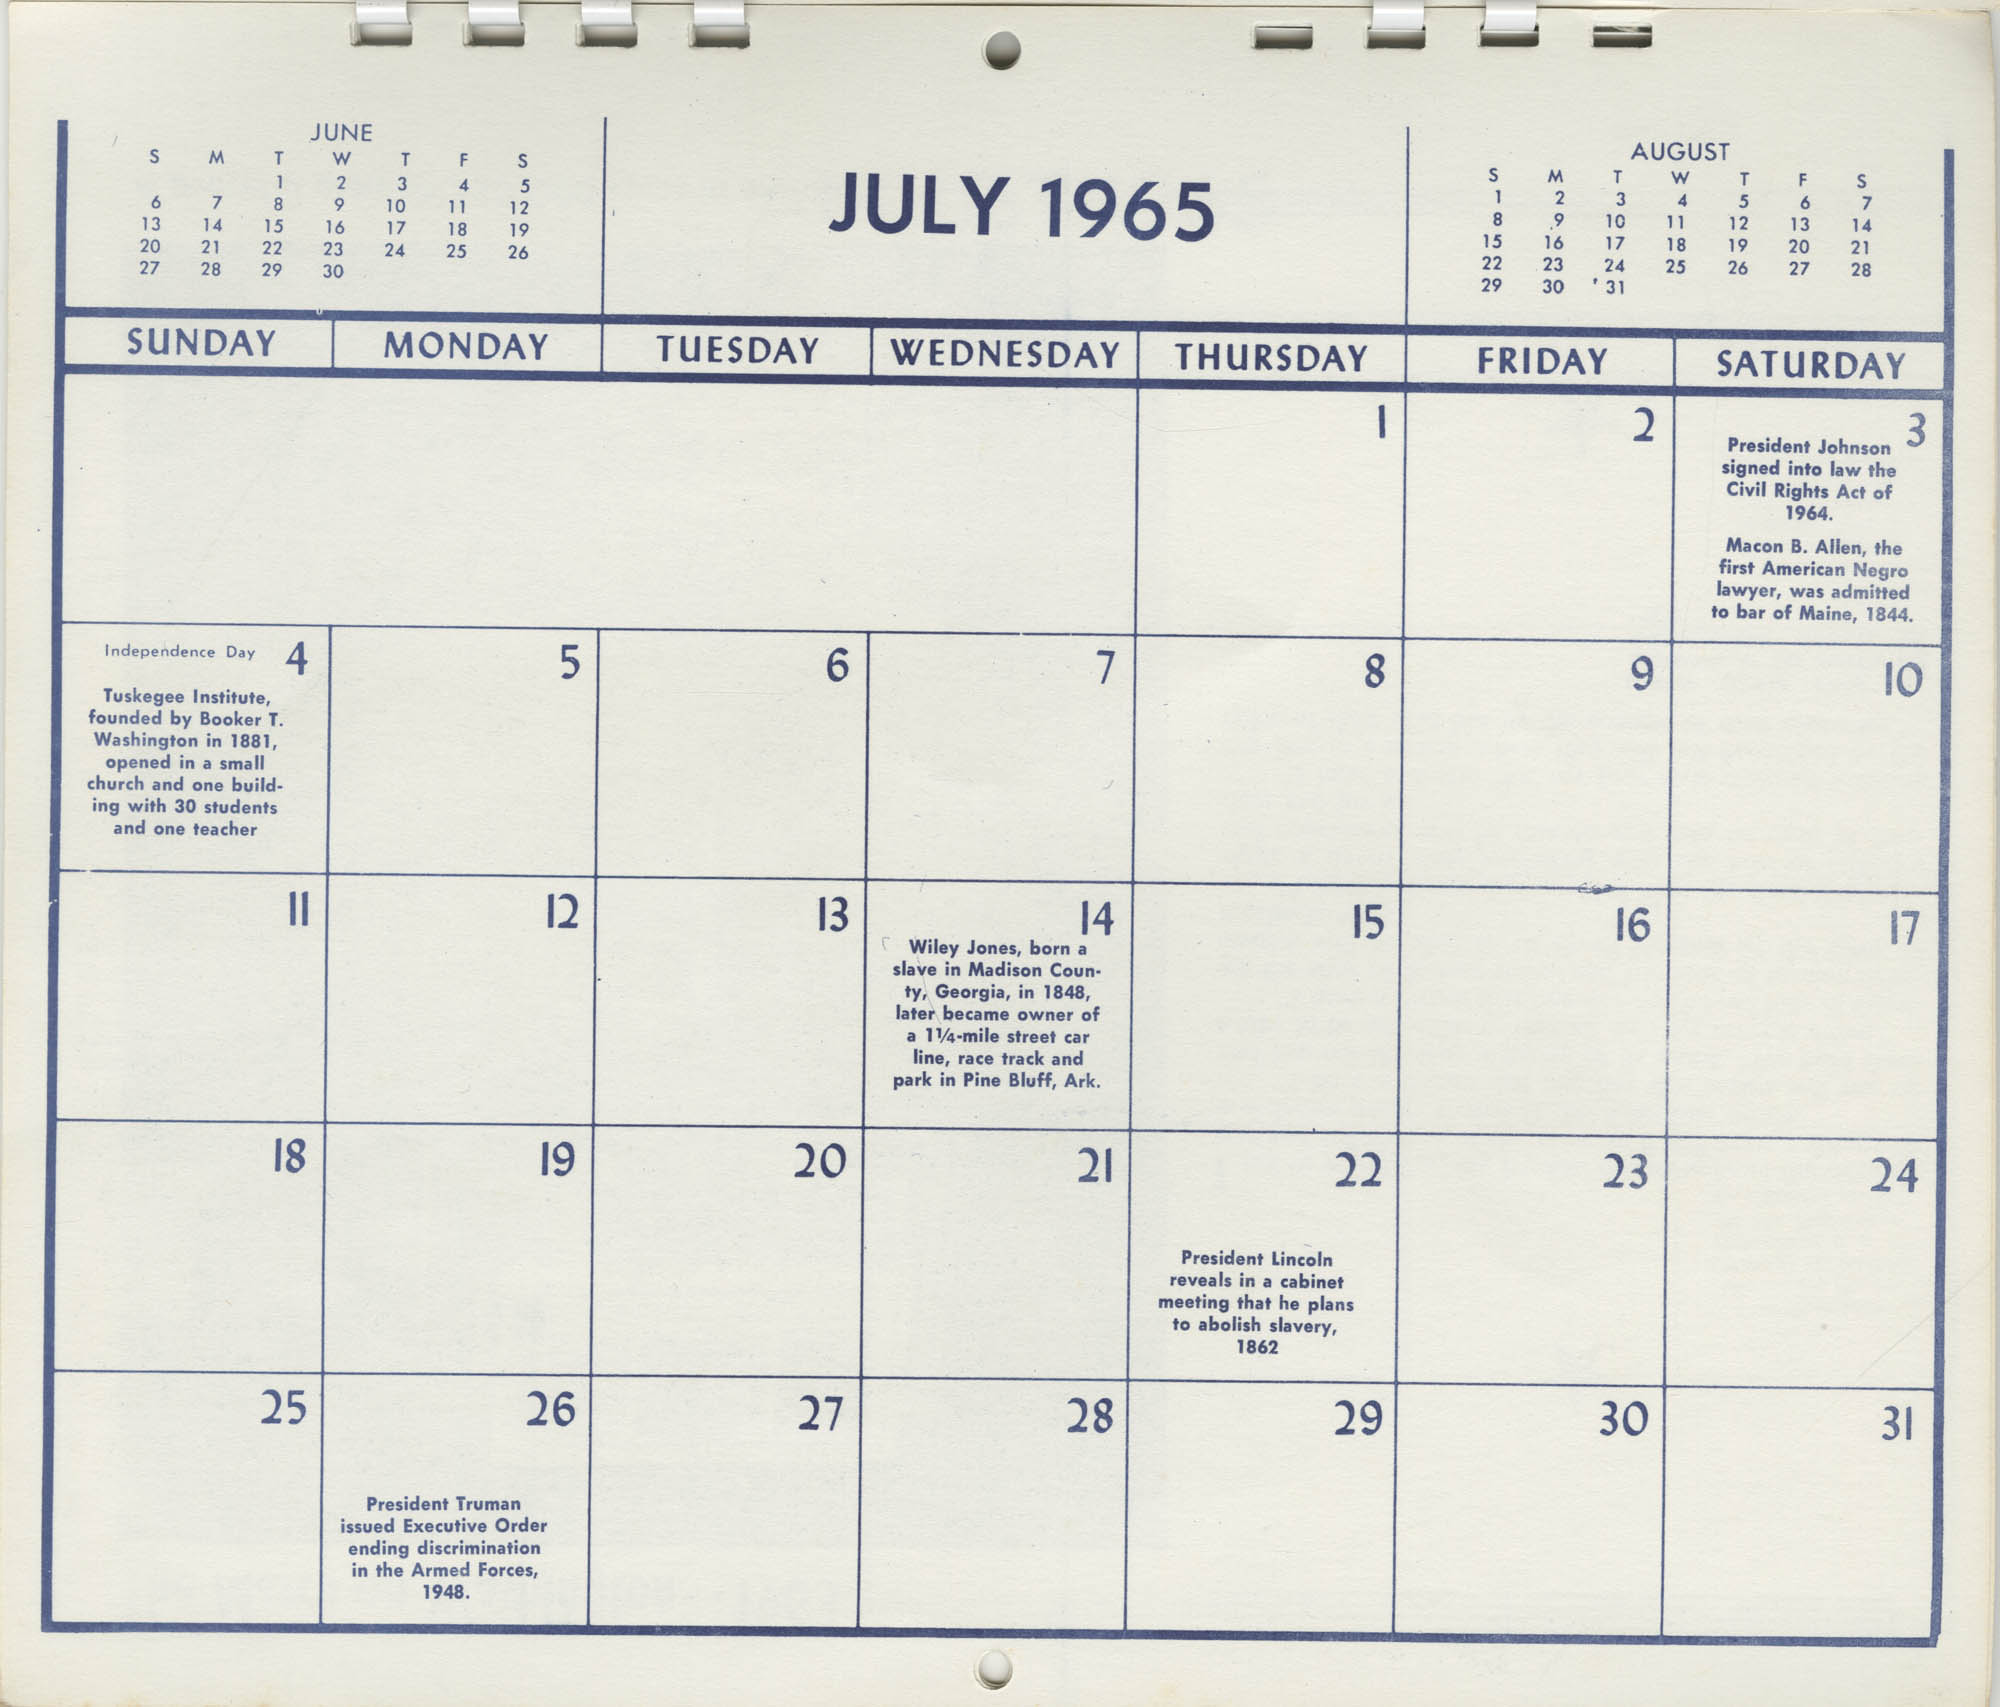 Southern Christian Leadership Conference Newsletter Calendar, July 1965, Bottom